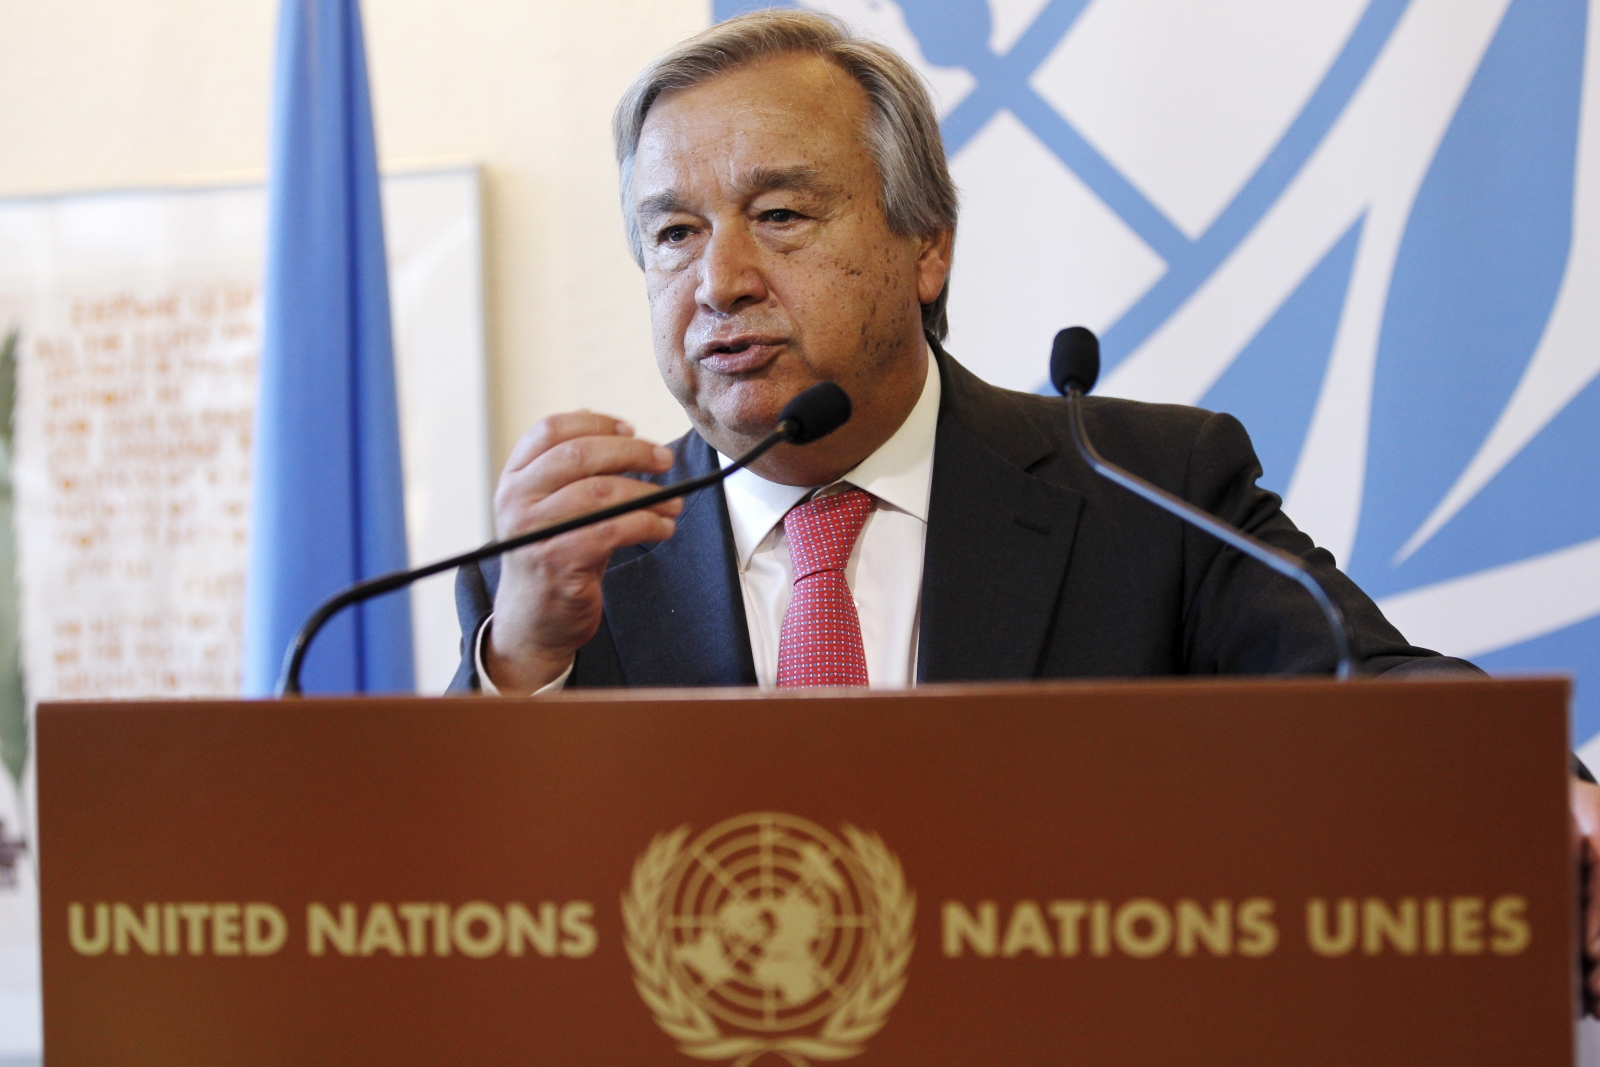 UN High Commissioner for Refugees Antonio Guterres